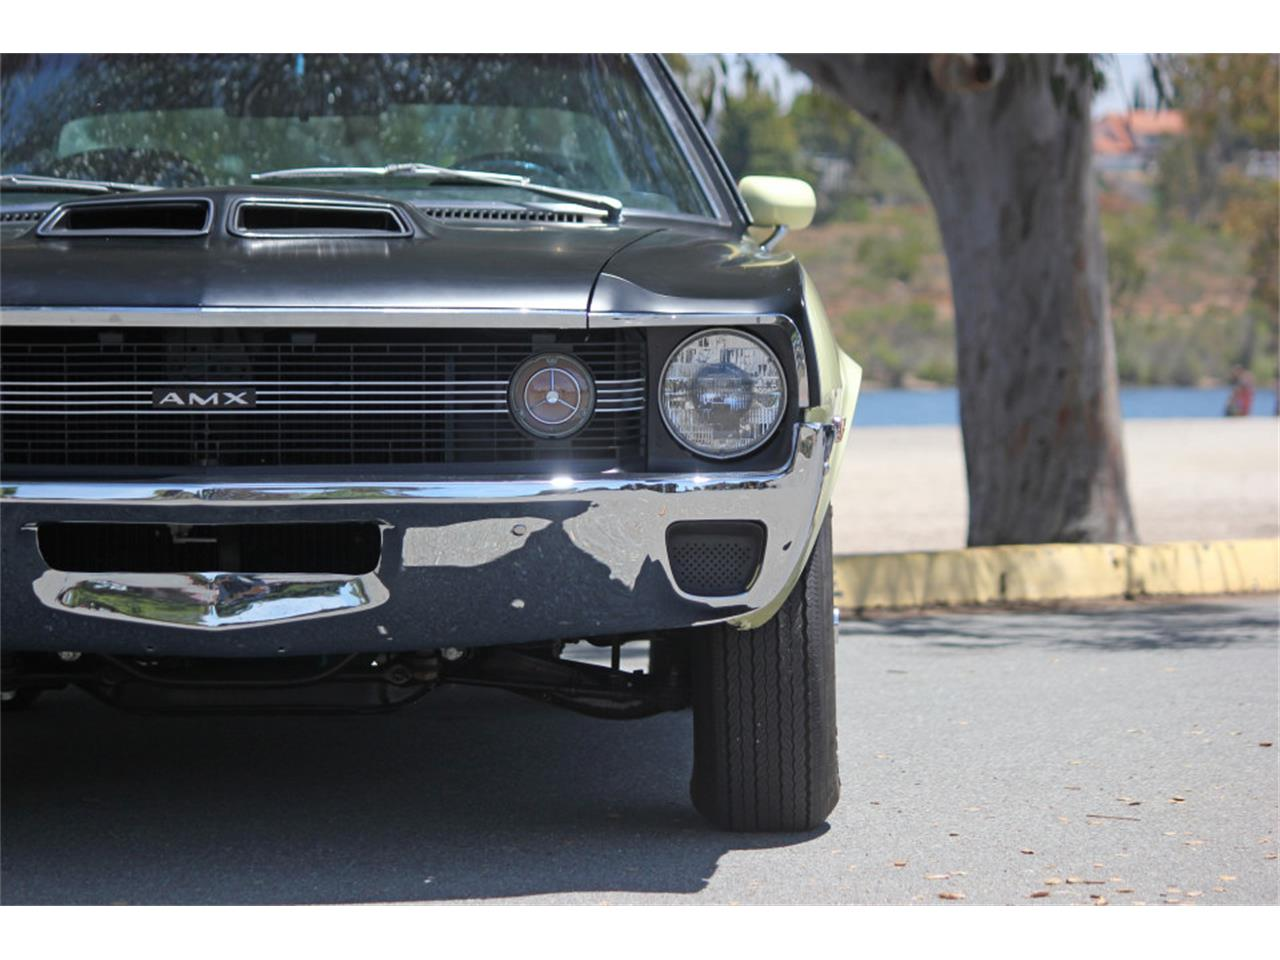 Large Picture of '70 AMX - $59,500.00 - QCFB